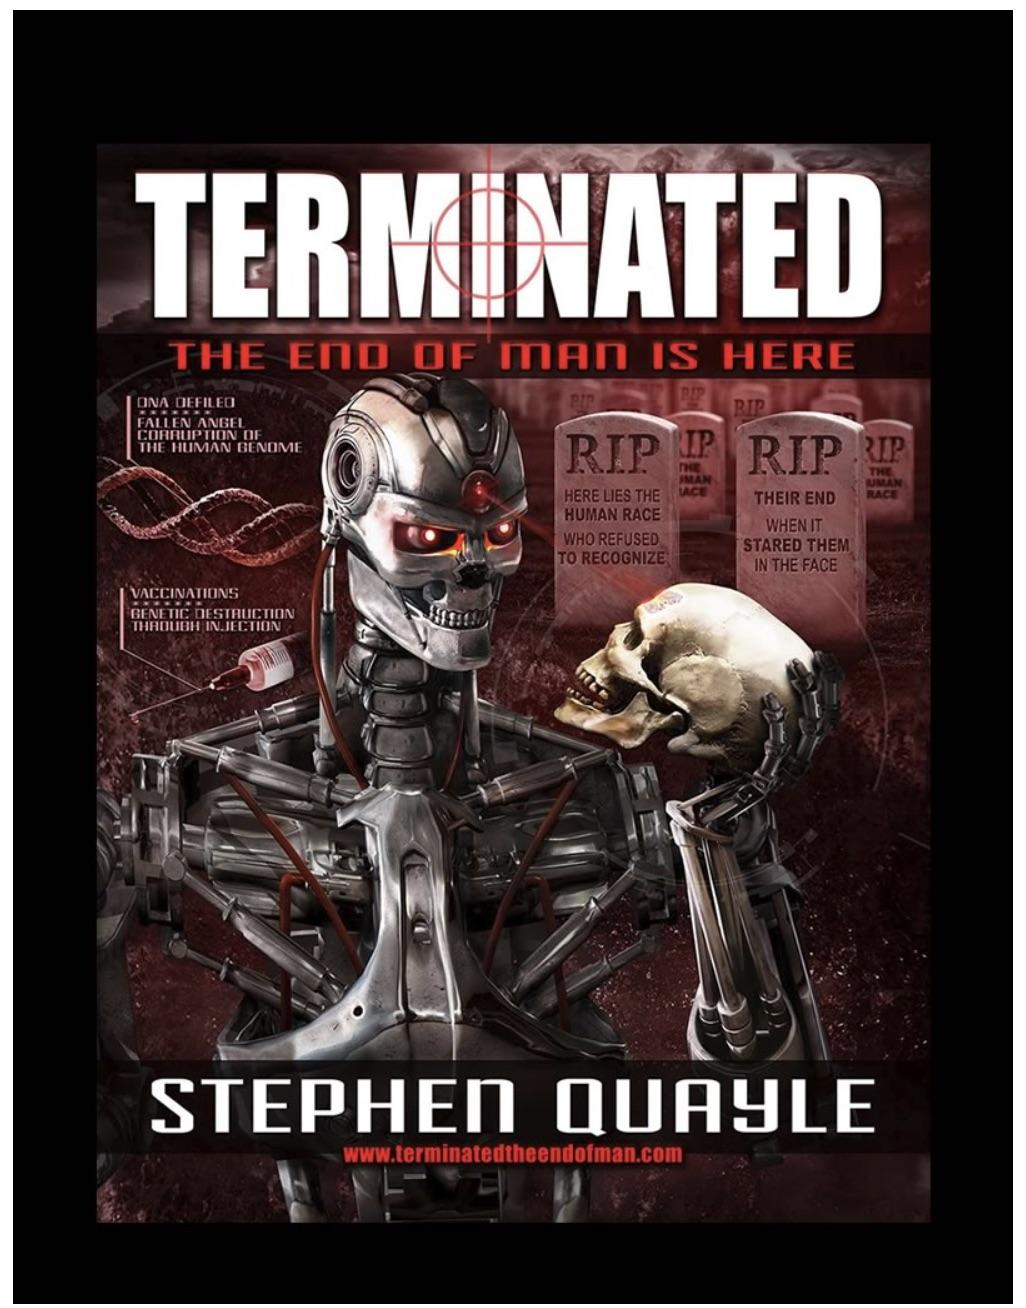 """""""TERMINATED"""" - THE MOST IMPORTANT BOOK YOU CAN EVER READ, AS TO THE END OF MANKIND AT THE HANDS OF ARTIFICIAL- INTELLIGENCE THROUGH DEMON RELEASED TECHNOLOGY!"""